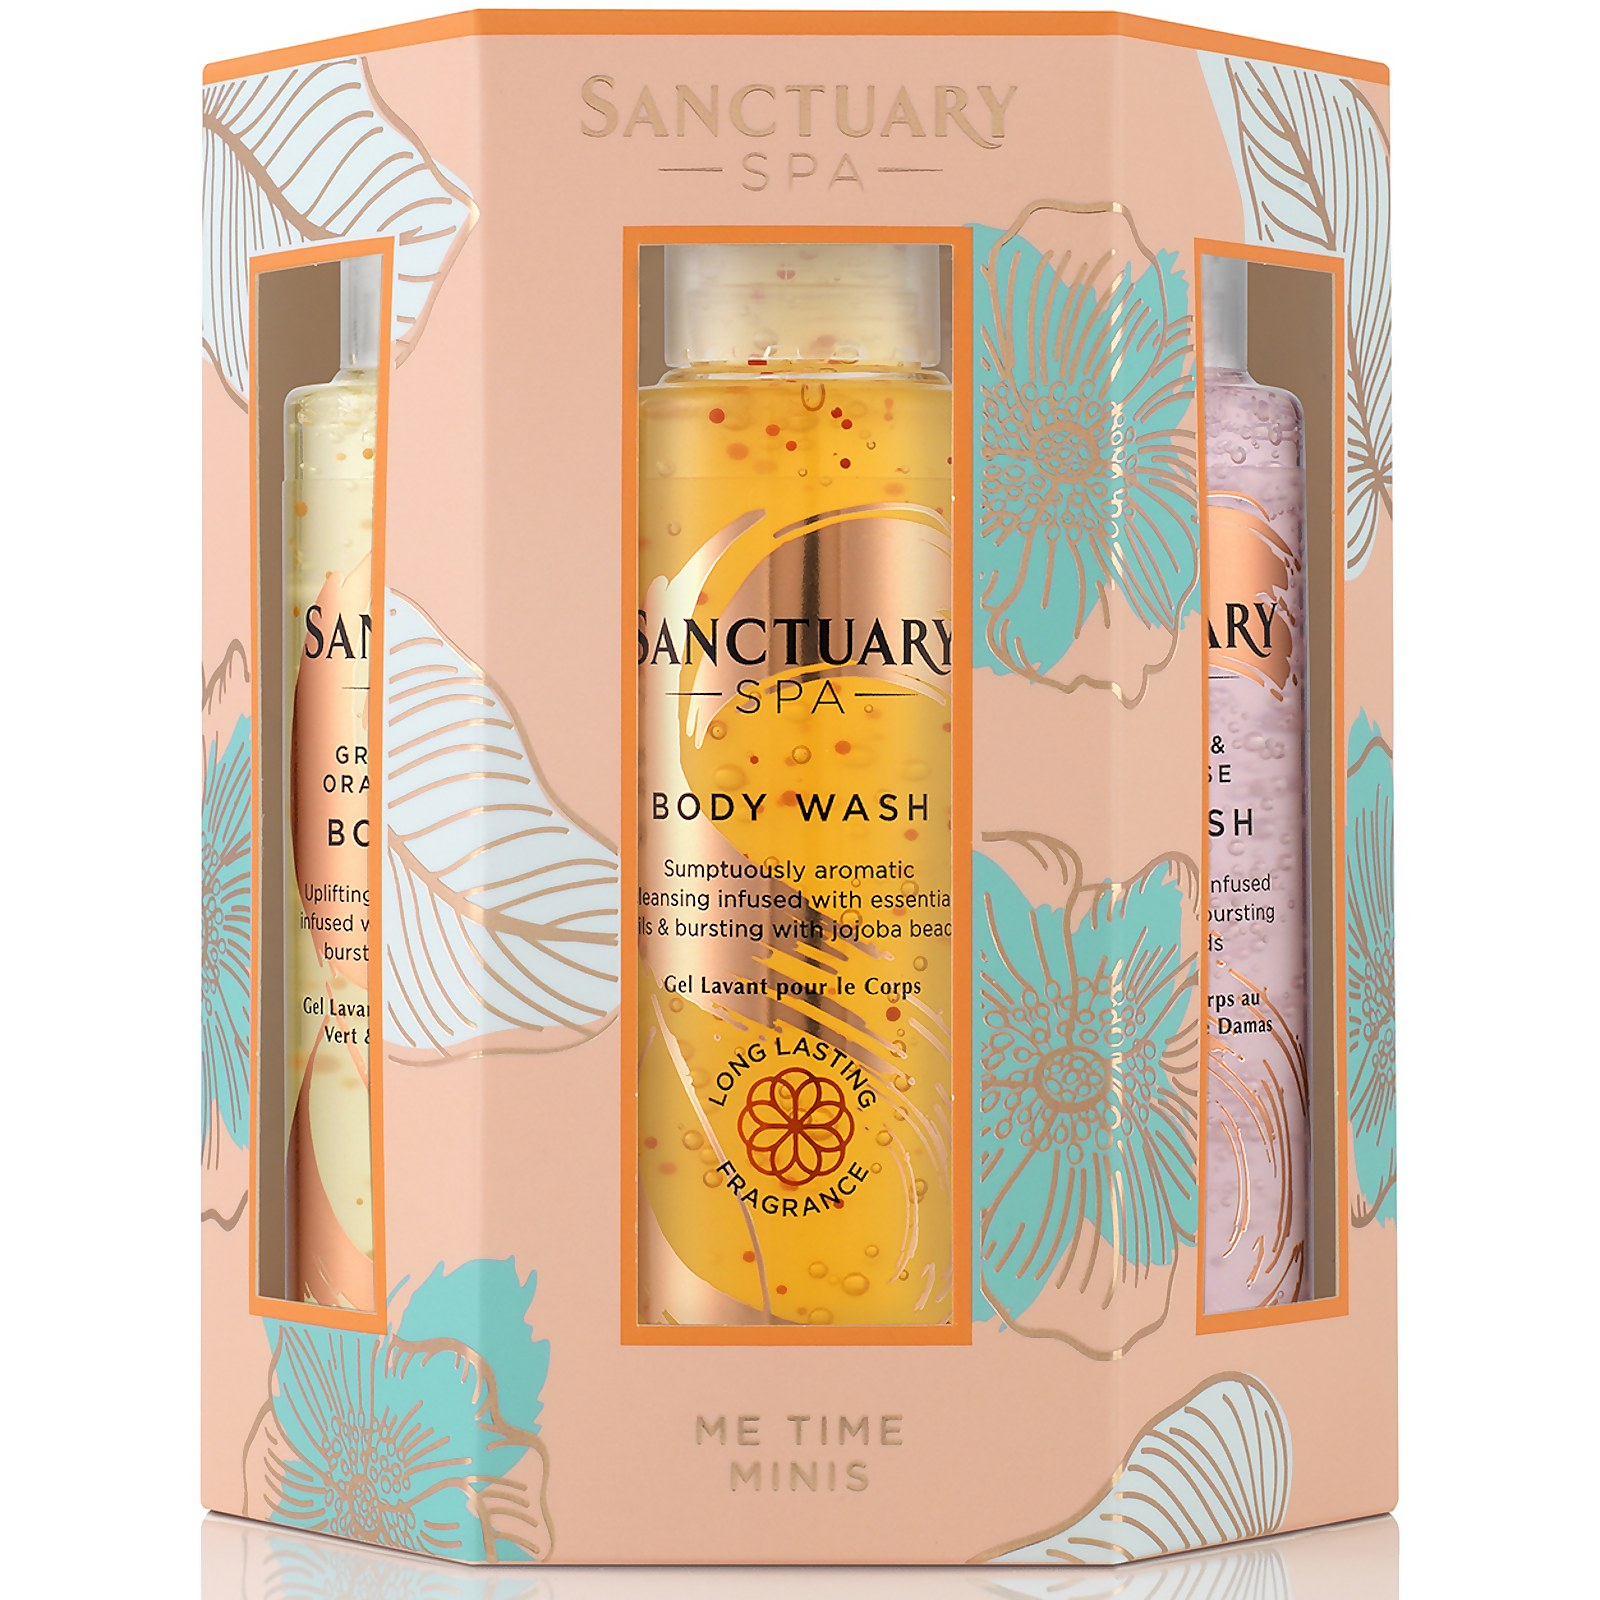 Me Time Travel Size Body Wash Minis Gift Set Sanctuary Spa